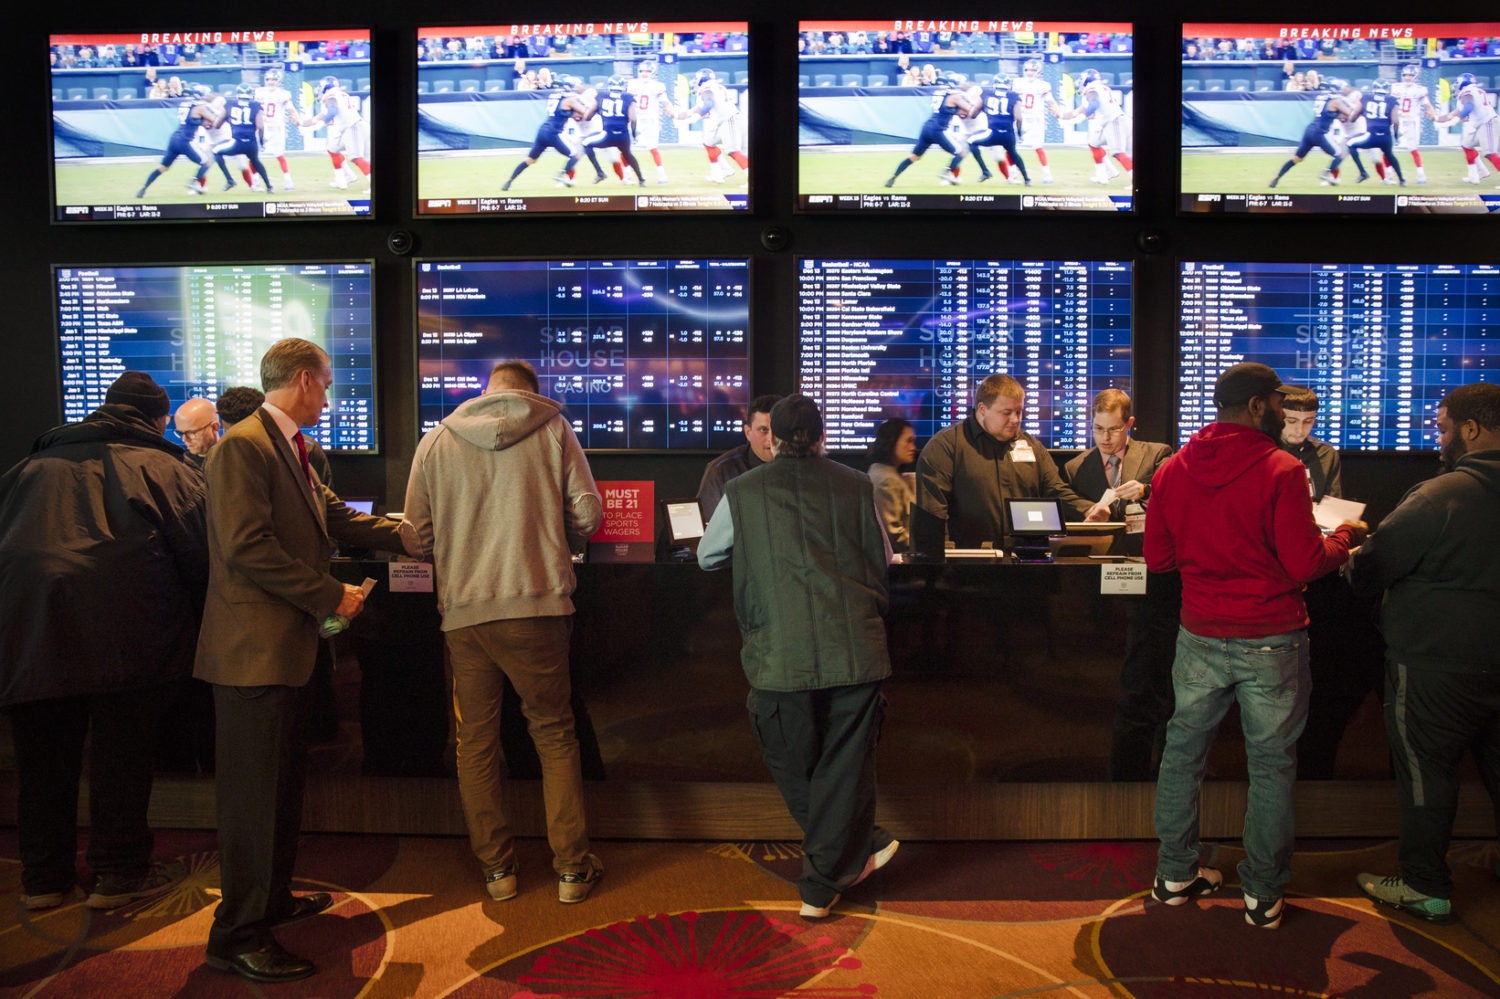 How to calculate sports betting odds aiding and abetting money laundering